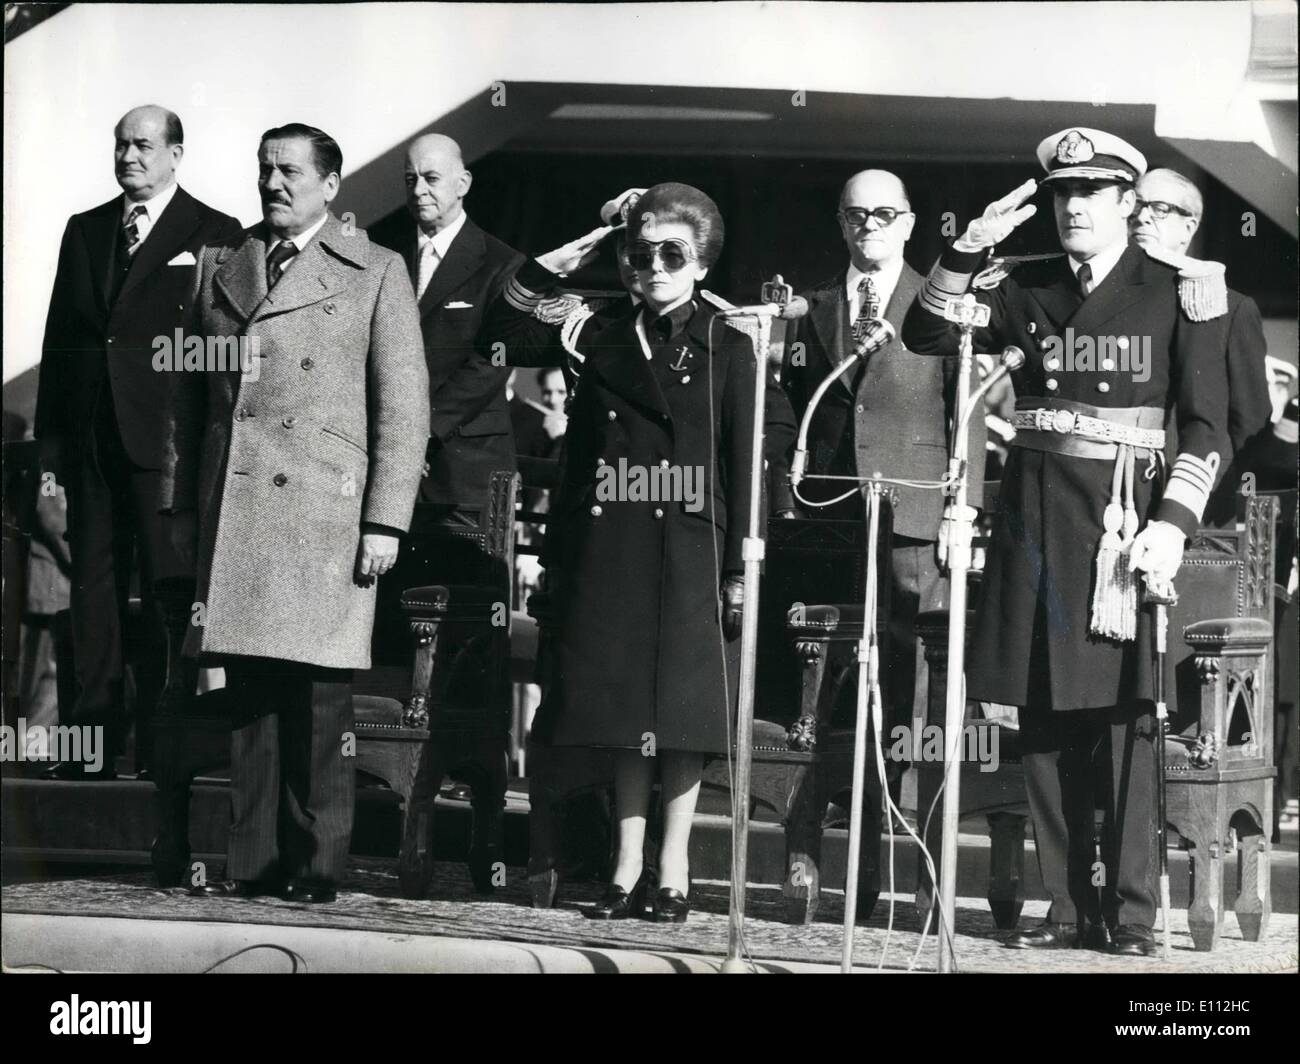 May 05, 1975 - Argentina's President headed the ceremonies of the ''Navy Day'' at the Naval Base of Puerto Belgrano. The chief of state, Maria Estela Martinez de Peron, visited the main naval base of the Argentine navy at the South Atlantic Airport of Puerto Belgrano. ''We are in war against the ortremie '' said Admiral Eduardo Massera in a speech made in presence of the Argentine President because the Argentine Navy follows its tradition to defend its historical patrimony against the terrorism who compromises the interior security of the country with results of their crimes'' - Stock Image